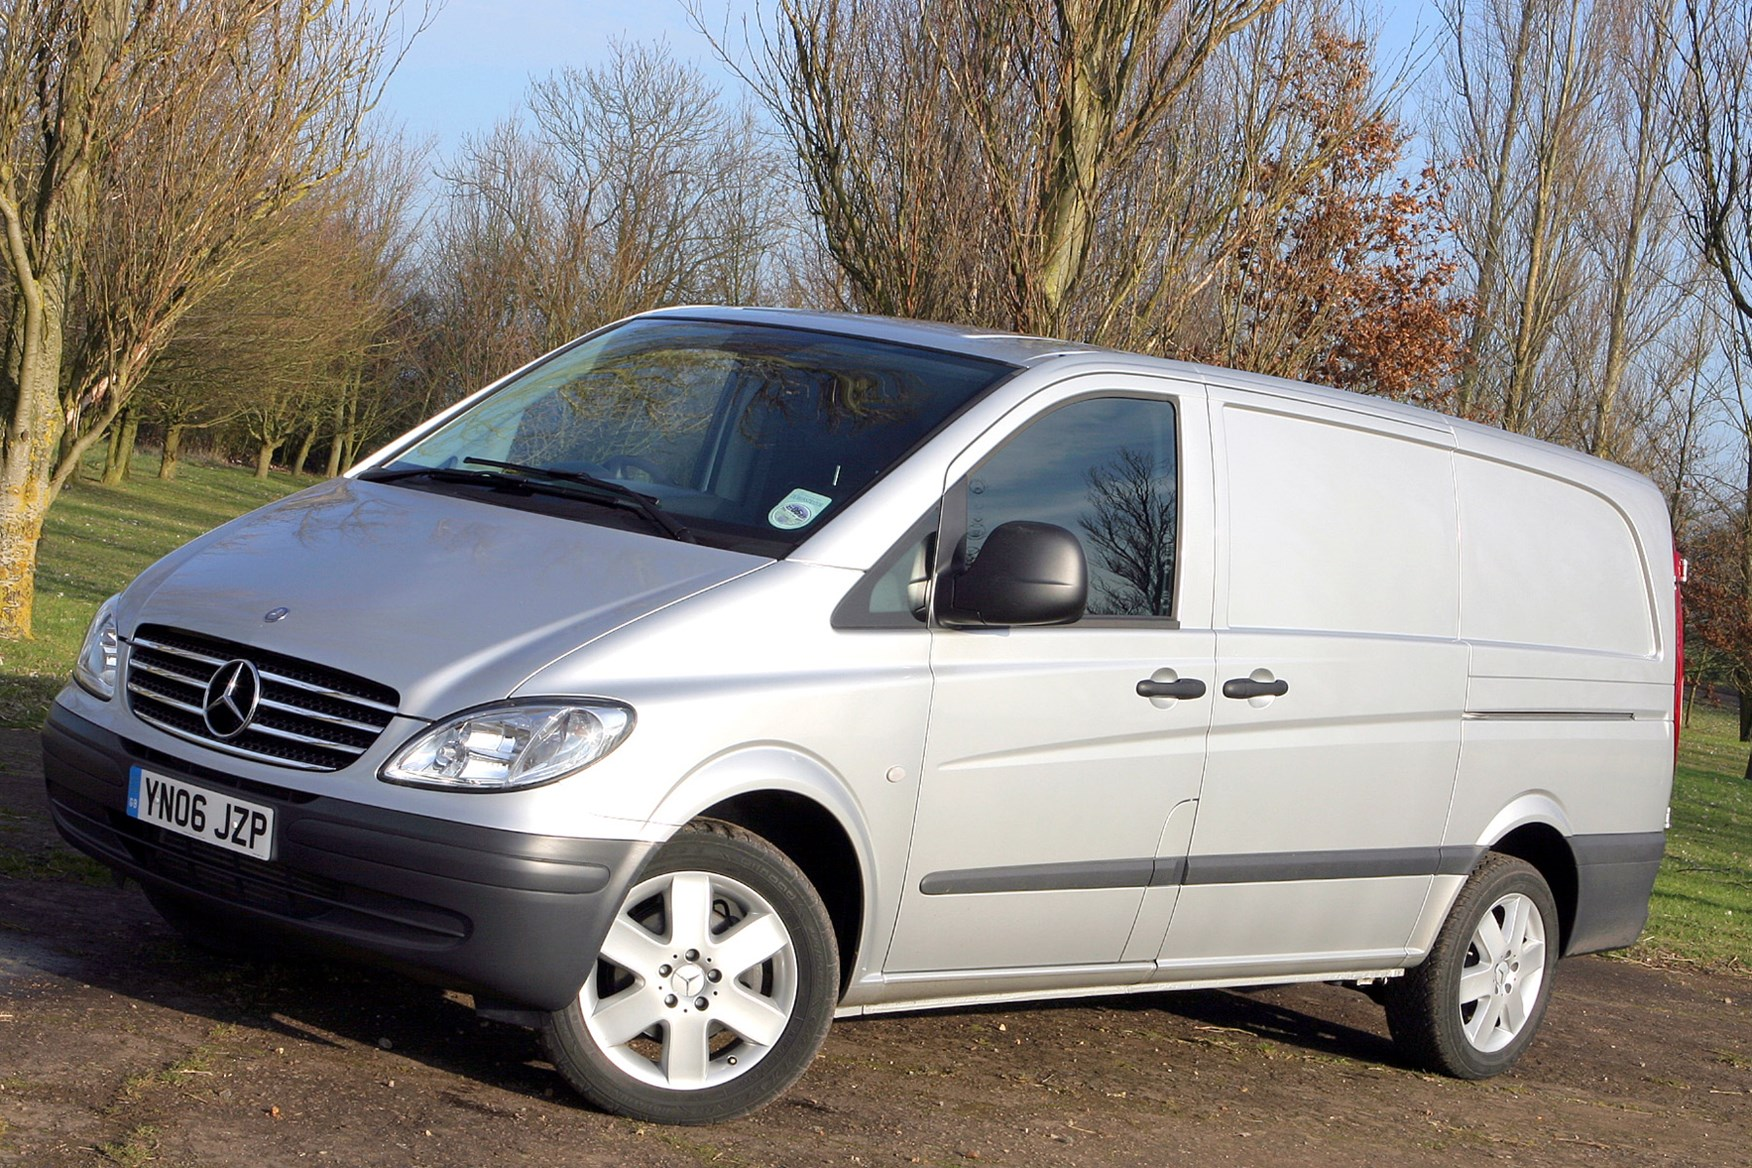 Mercedes-Benz Vito 2003-2014 review on Parkers Vans - side exterior